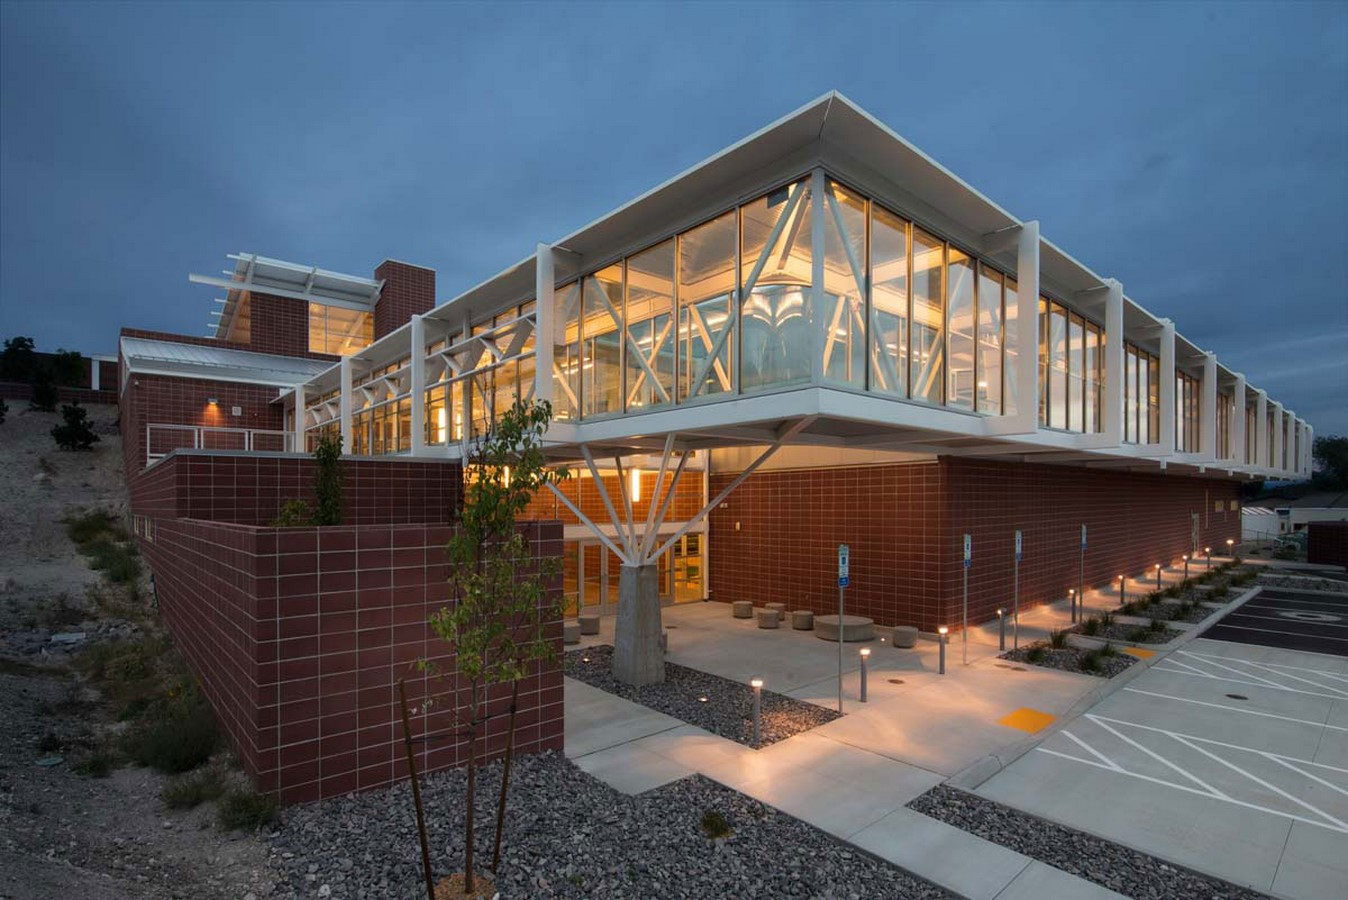 Architects in Reno - Top 40 Architects in Reno - Sheet20